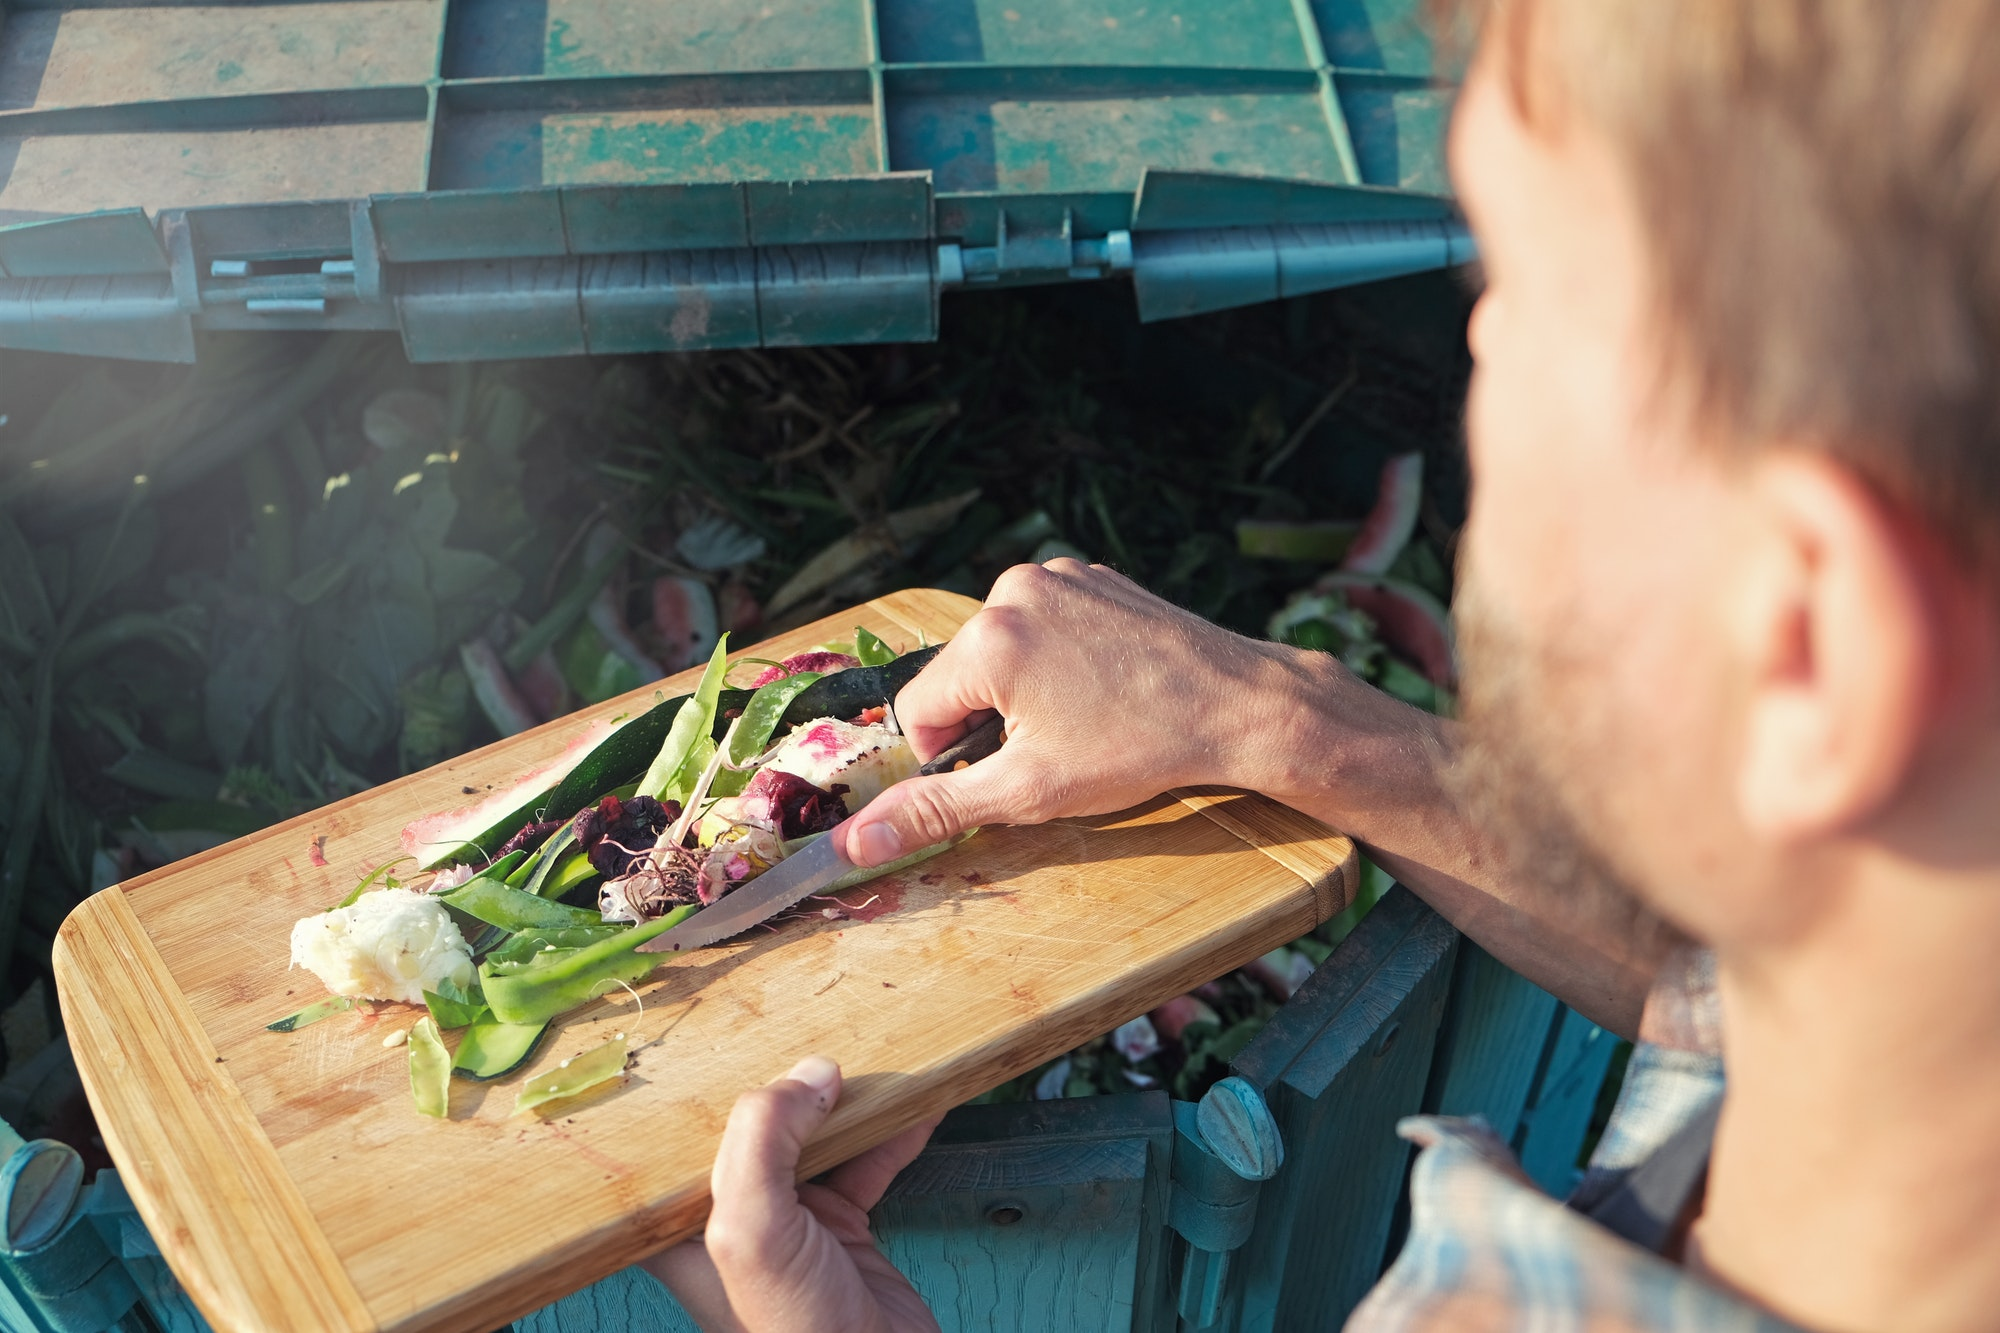 Person throws kitchen food waste into compost heap to make organic fertilizer. Composting.